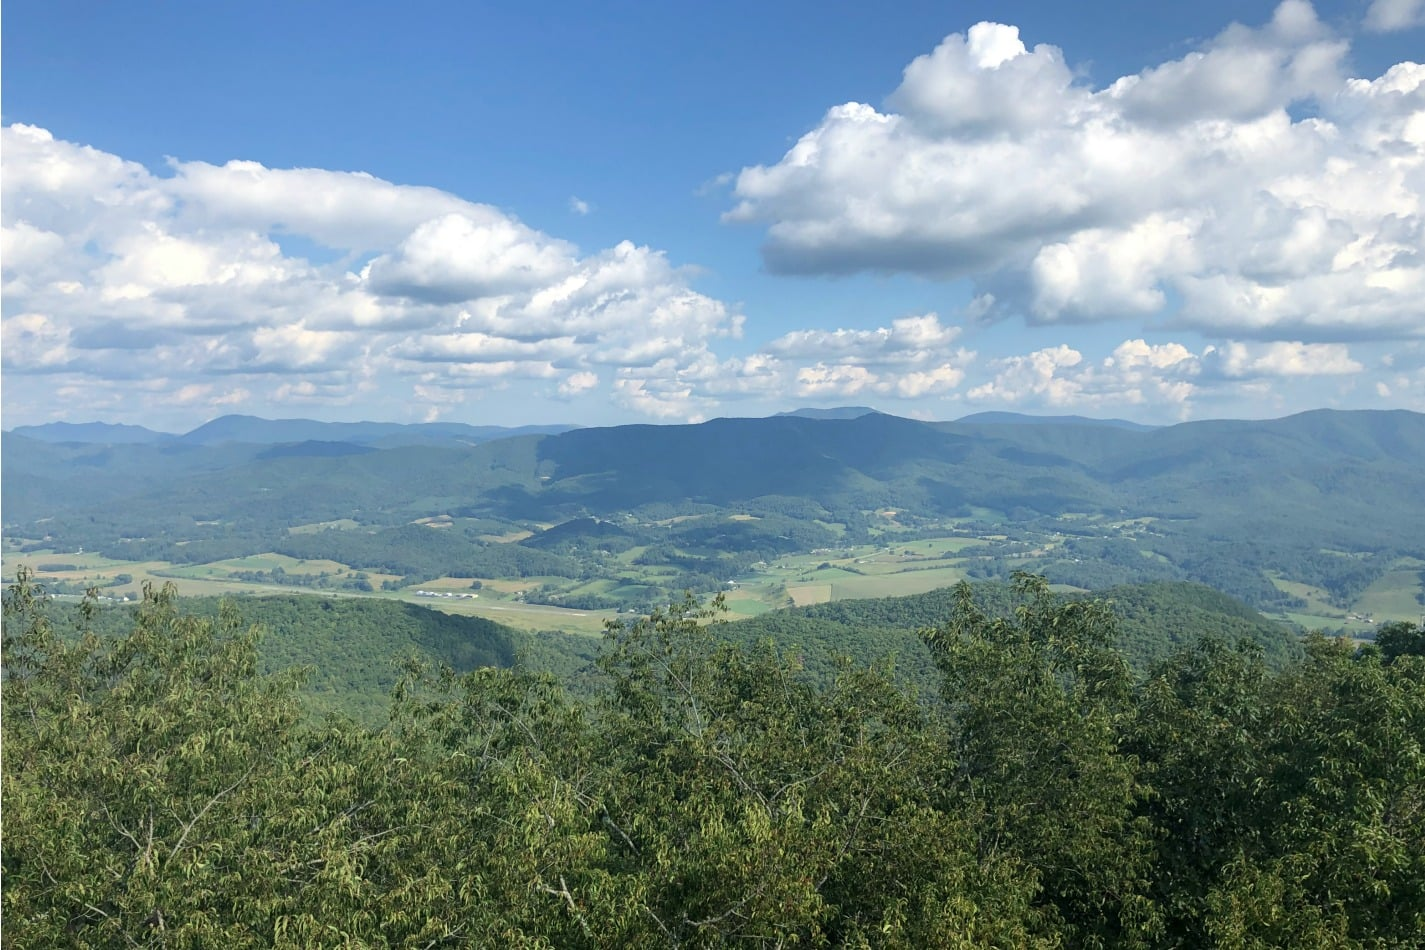 Labor Day Hike to the Fire Tower | Growing Up Herbal | Enjoy views of the Appalachian Mountains of East Tennessee in these photos from our Labor Day hike to the fire tower.